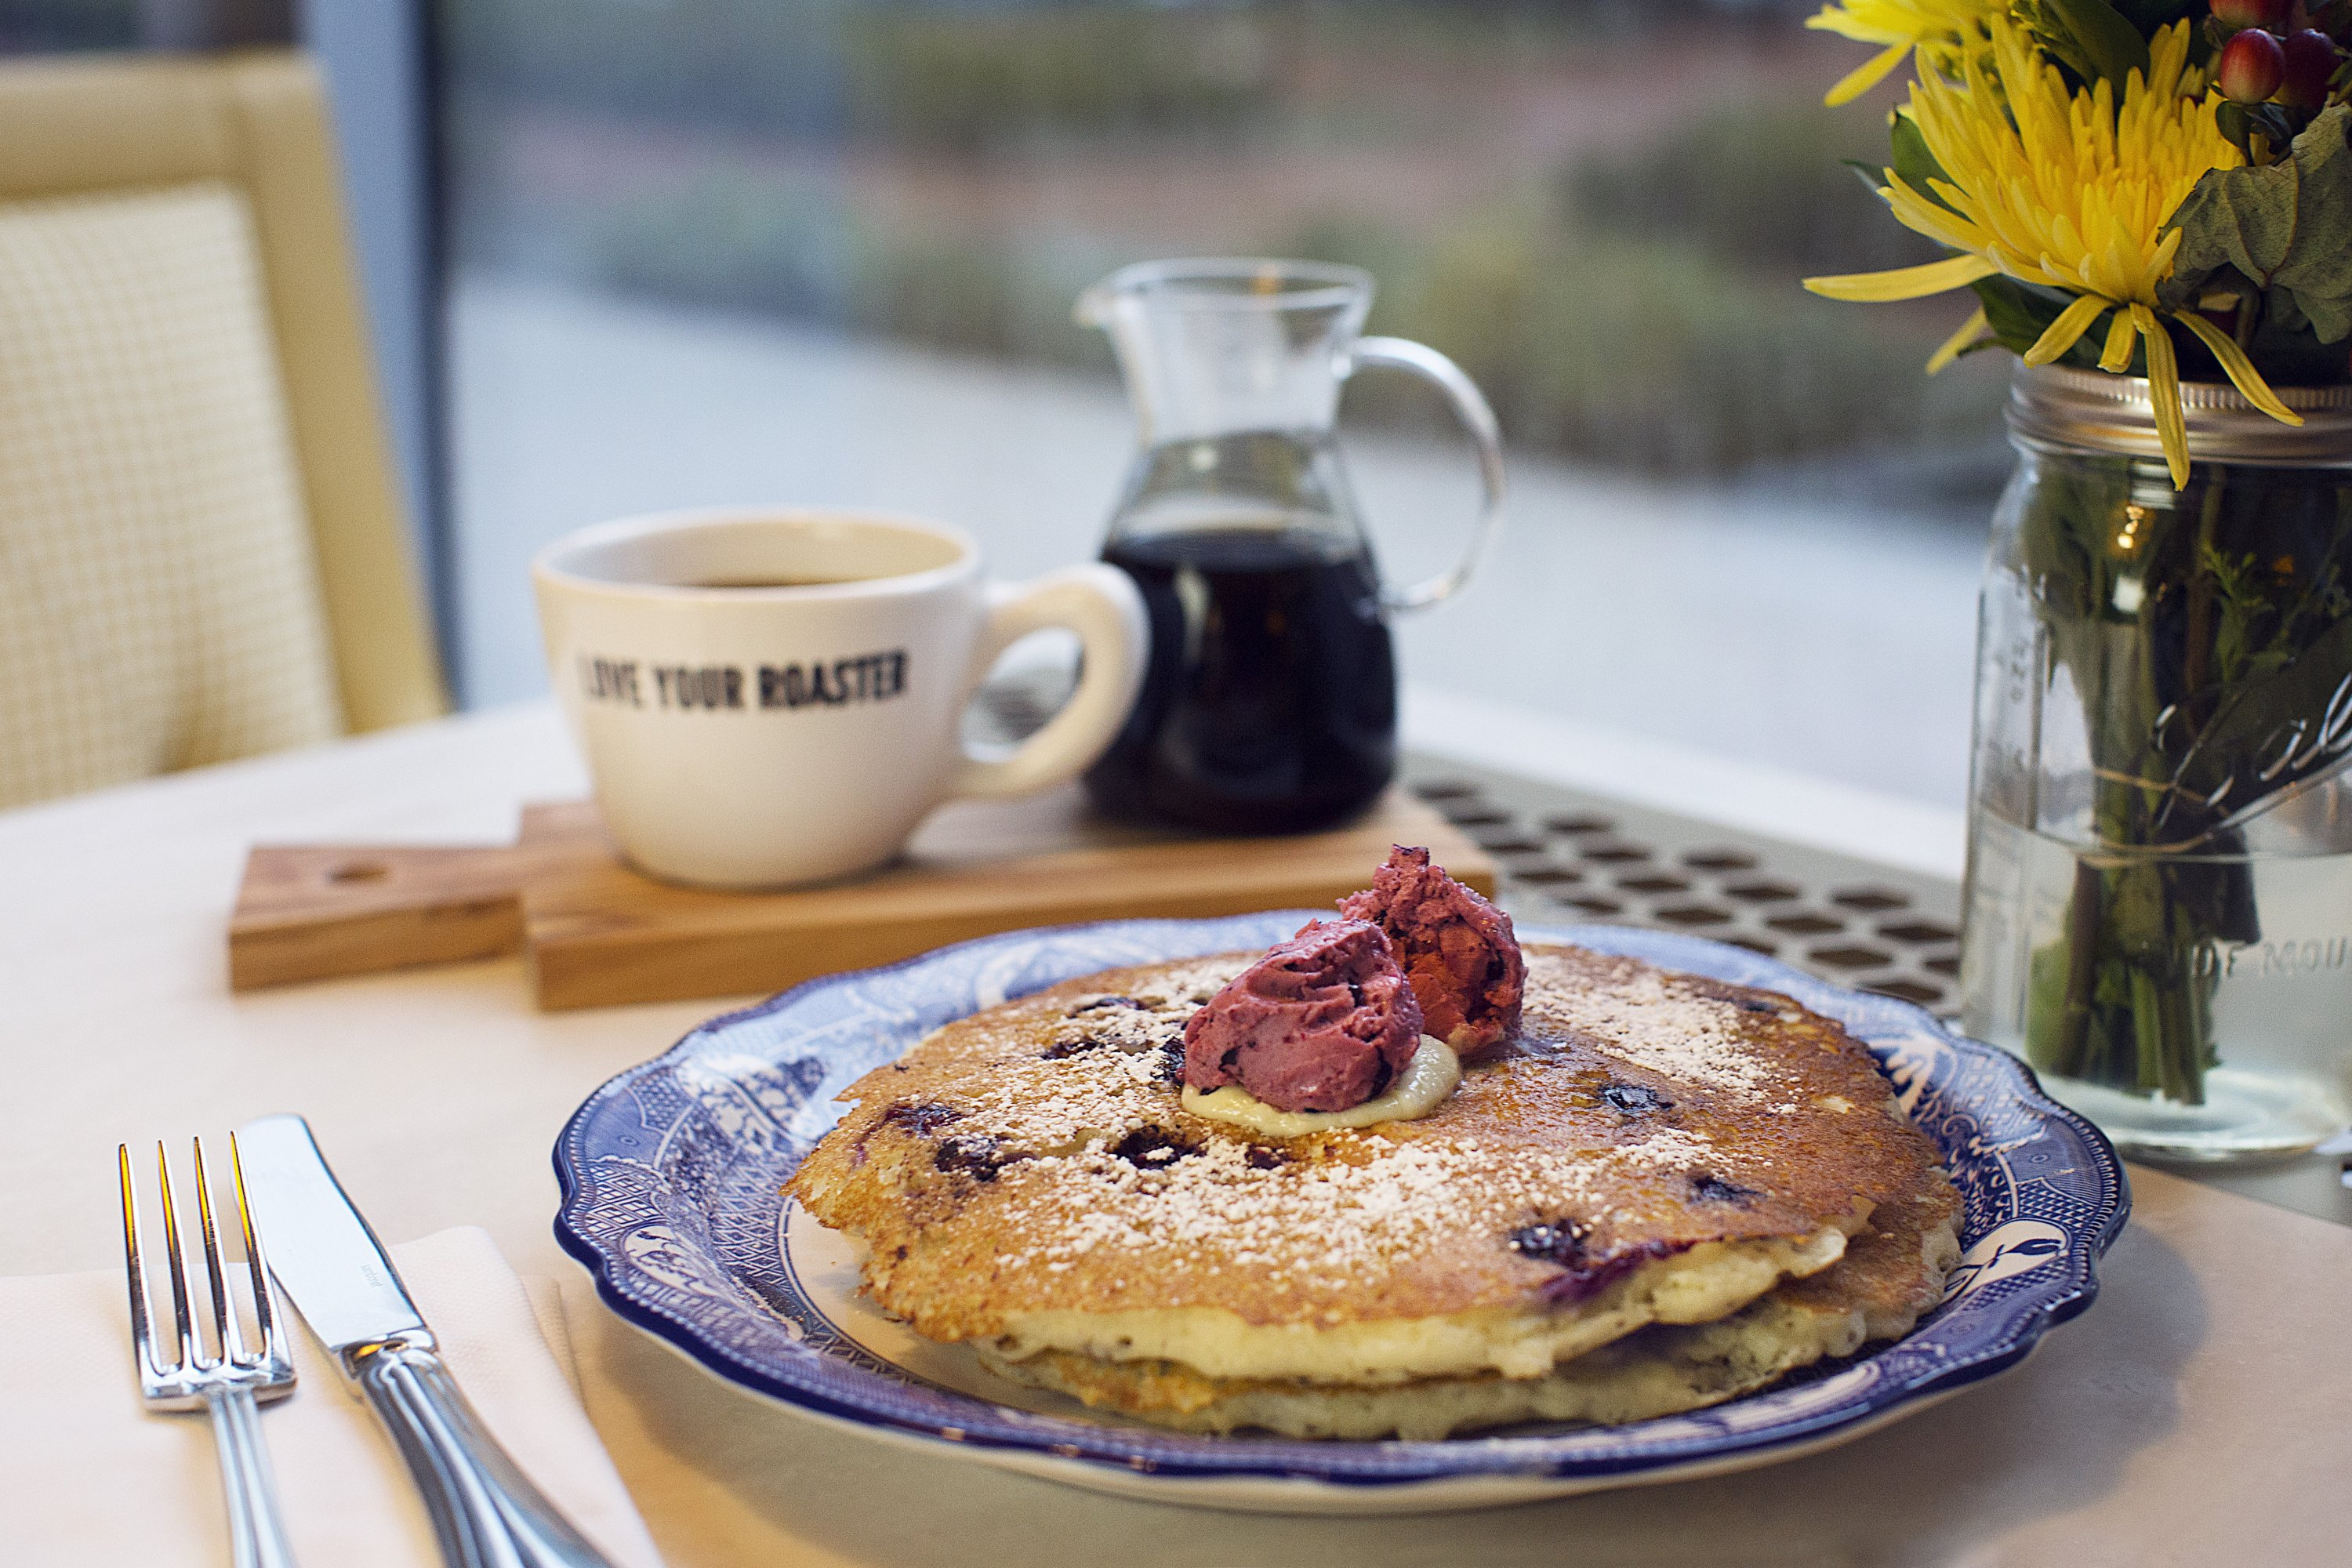 Blueberry pancakes at Farmers & Distillers. Photograph courtesy of Farmers Restaurant Group.